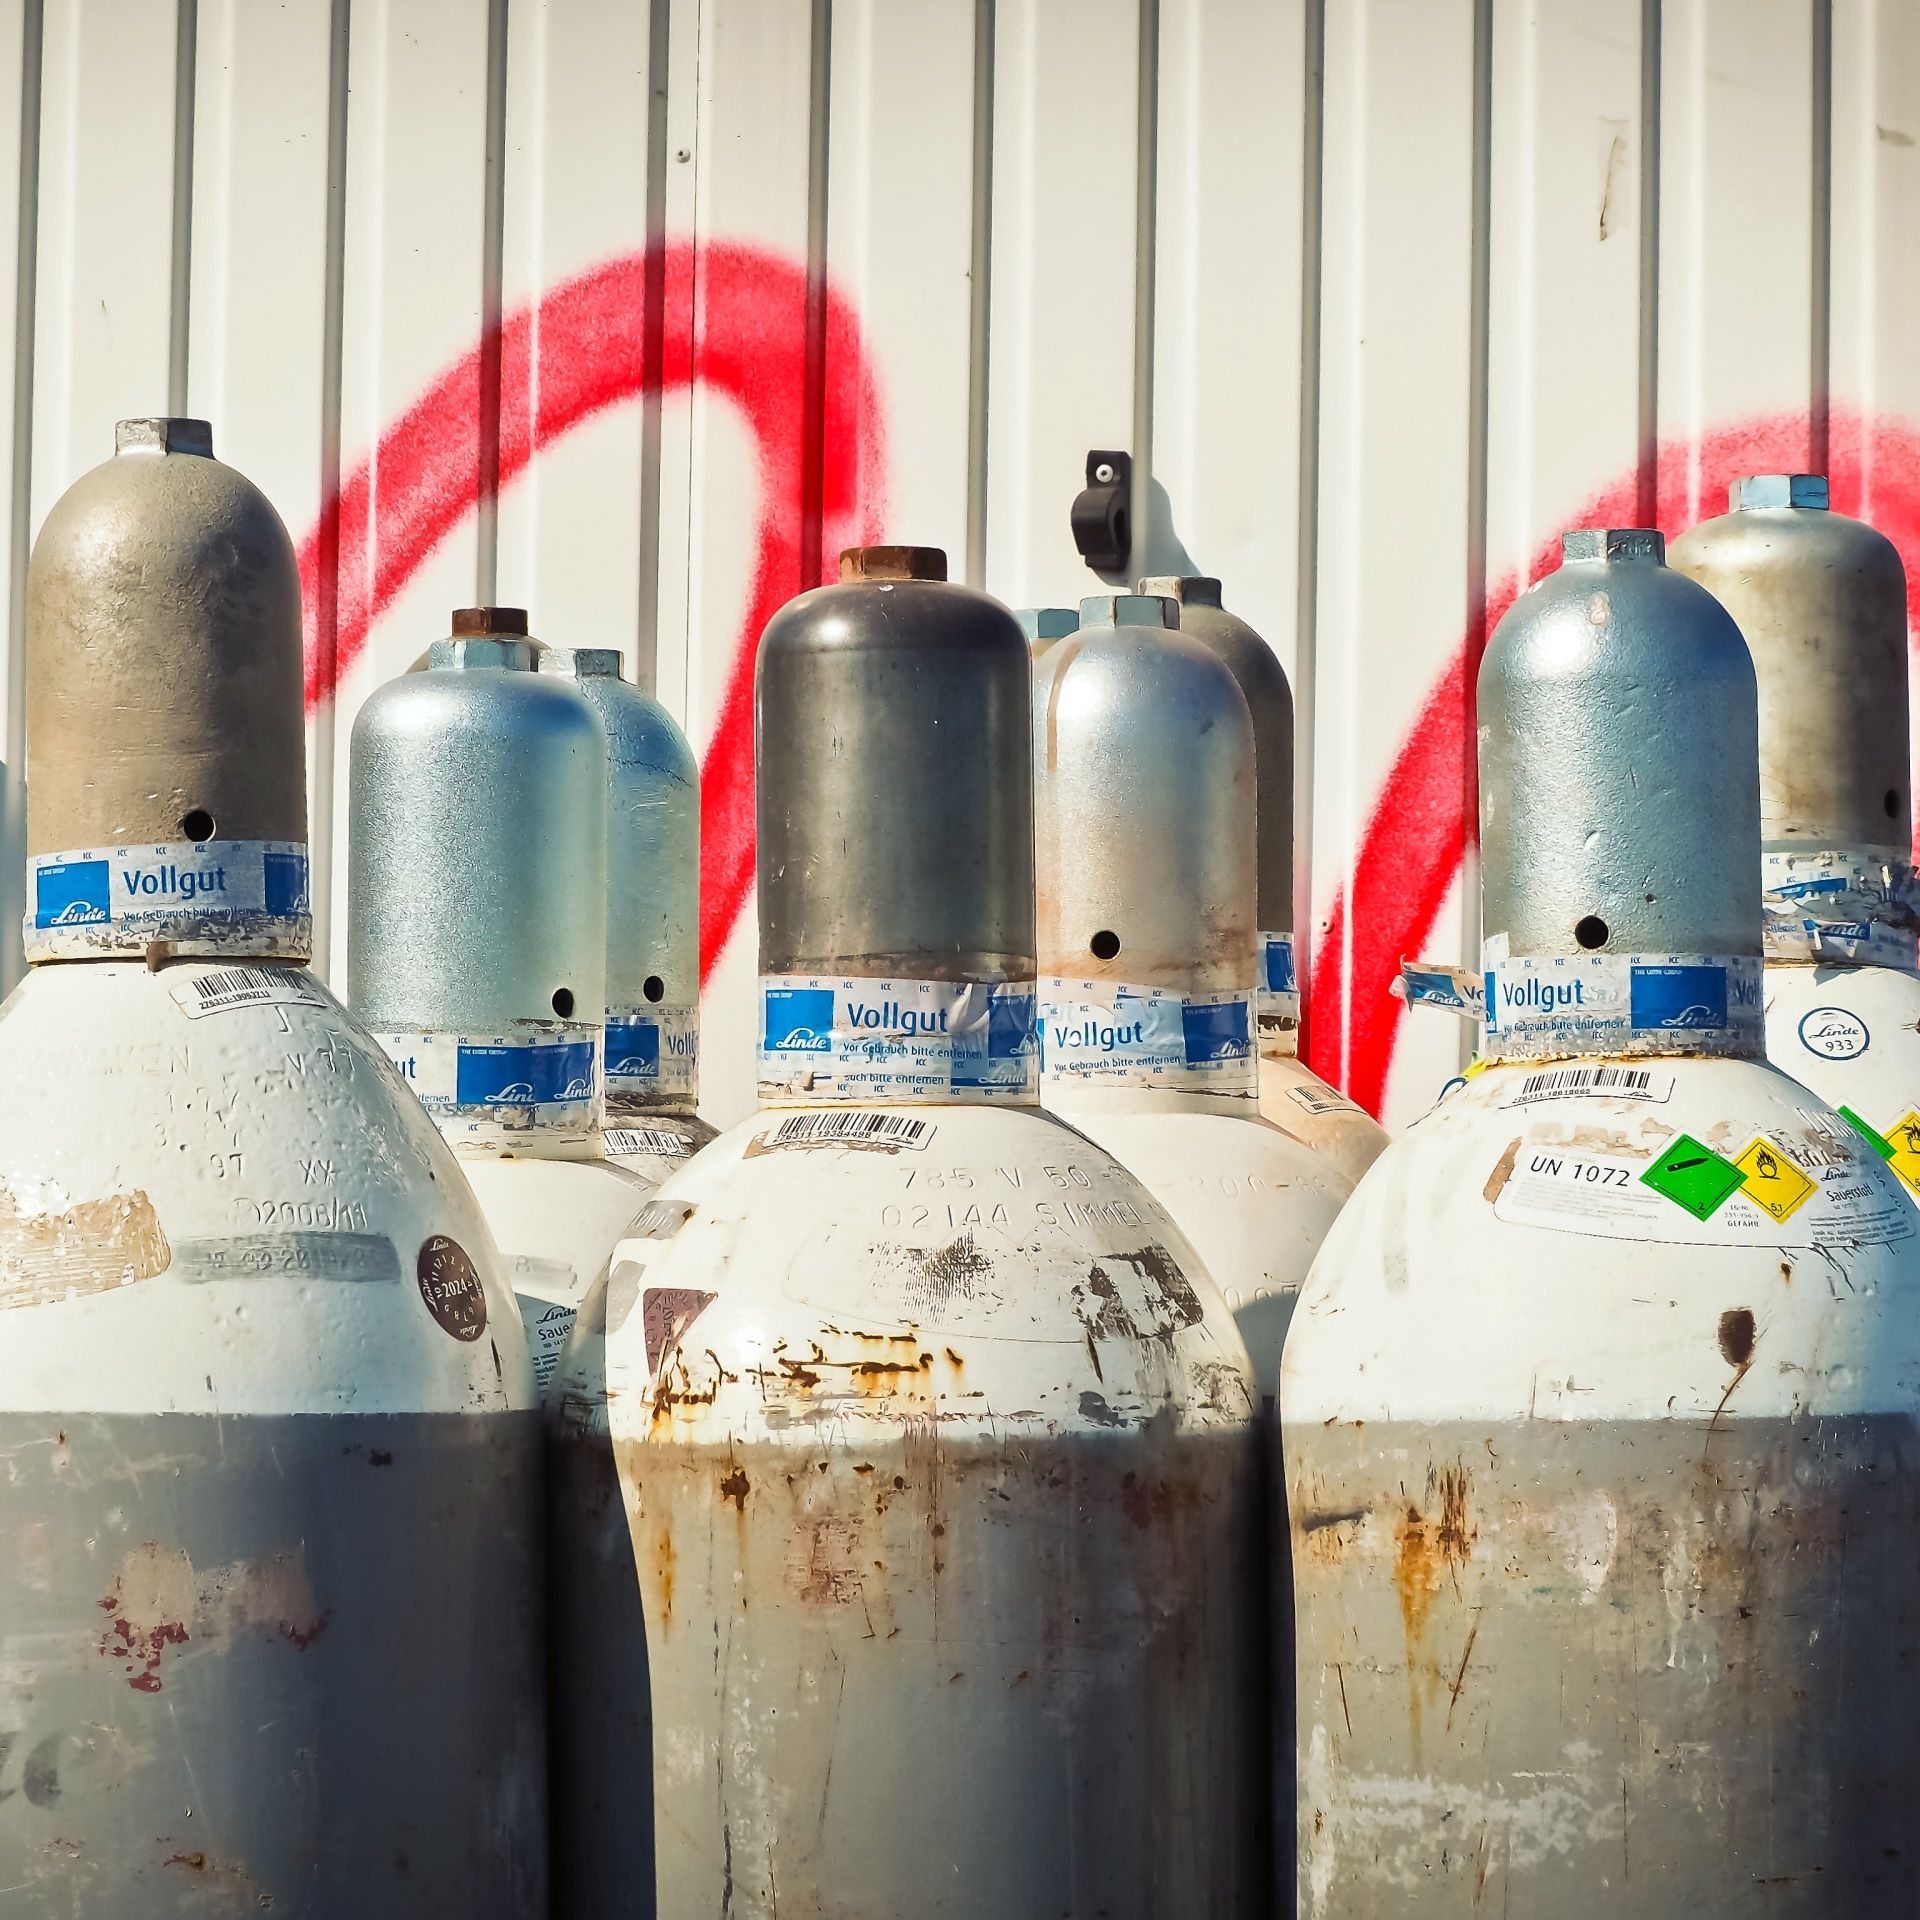 Compressed gas is dangerous in and of itself